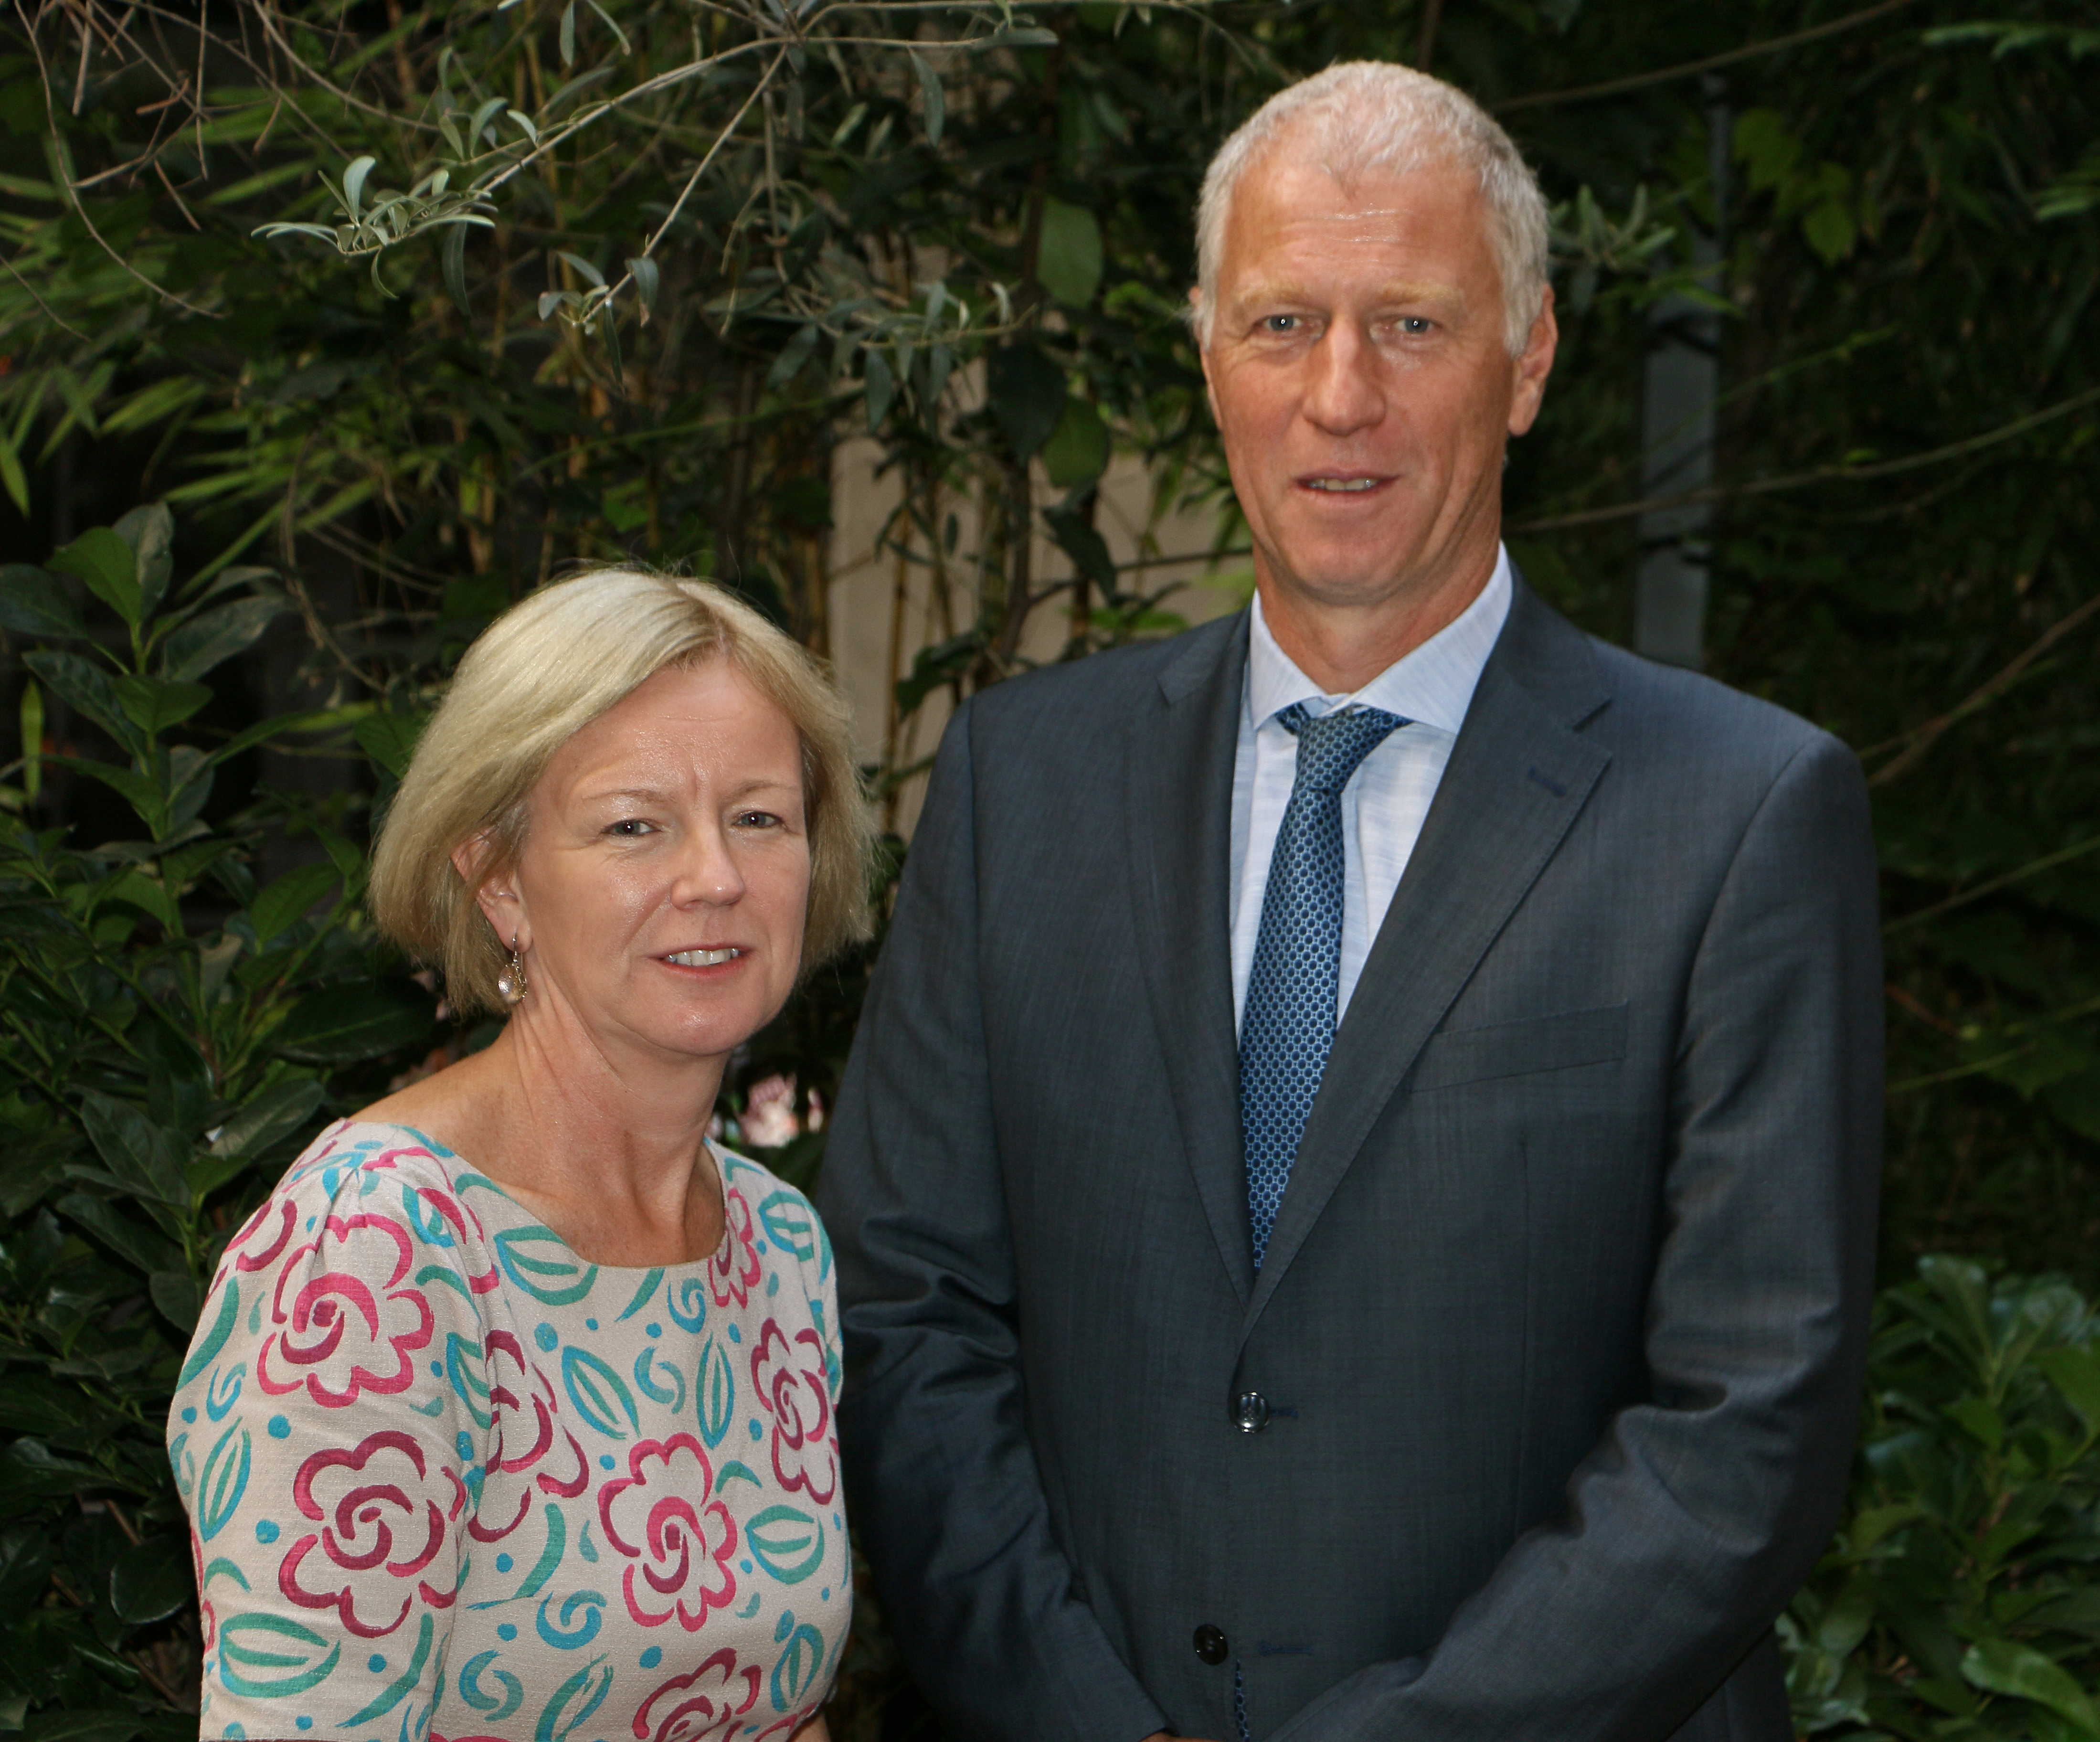 Laura Burke, chair of the EEA Management Board, with Hans Bruyninckx, EEA Executive Director